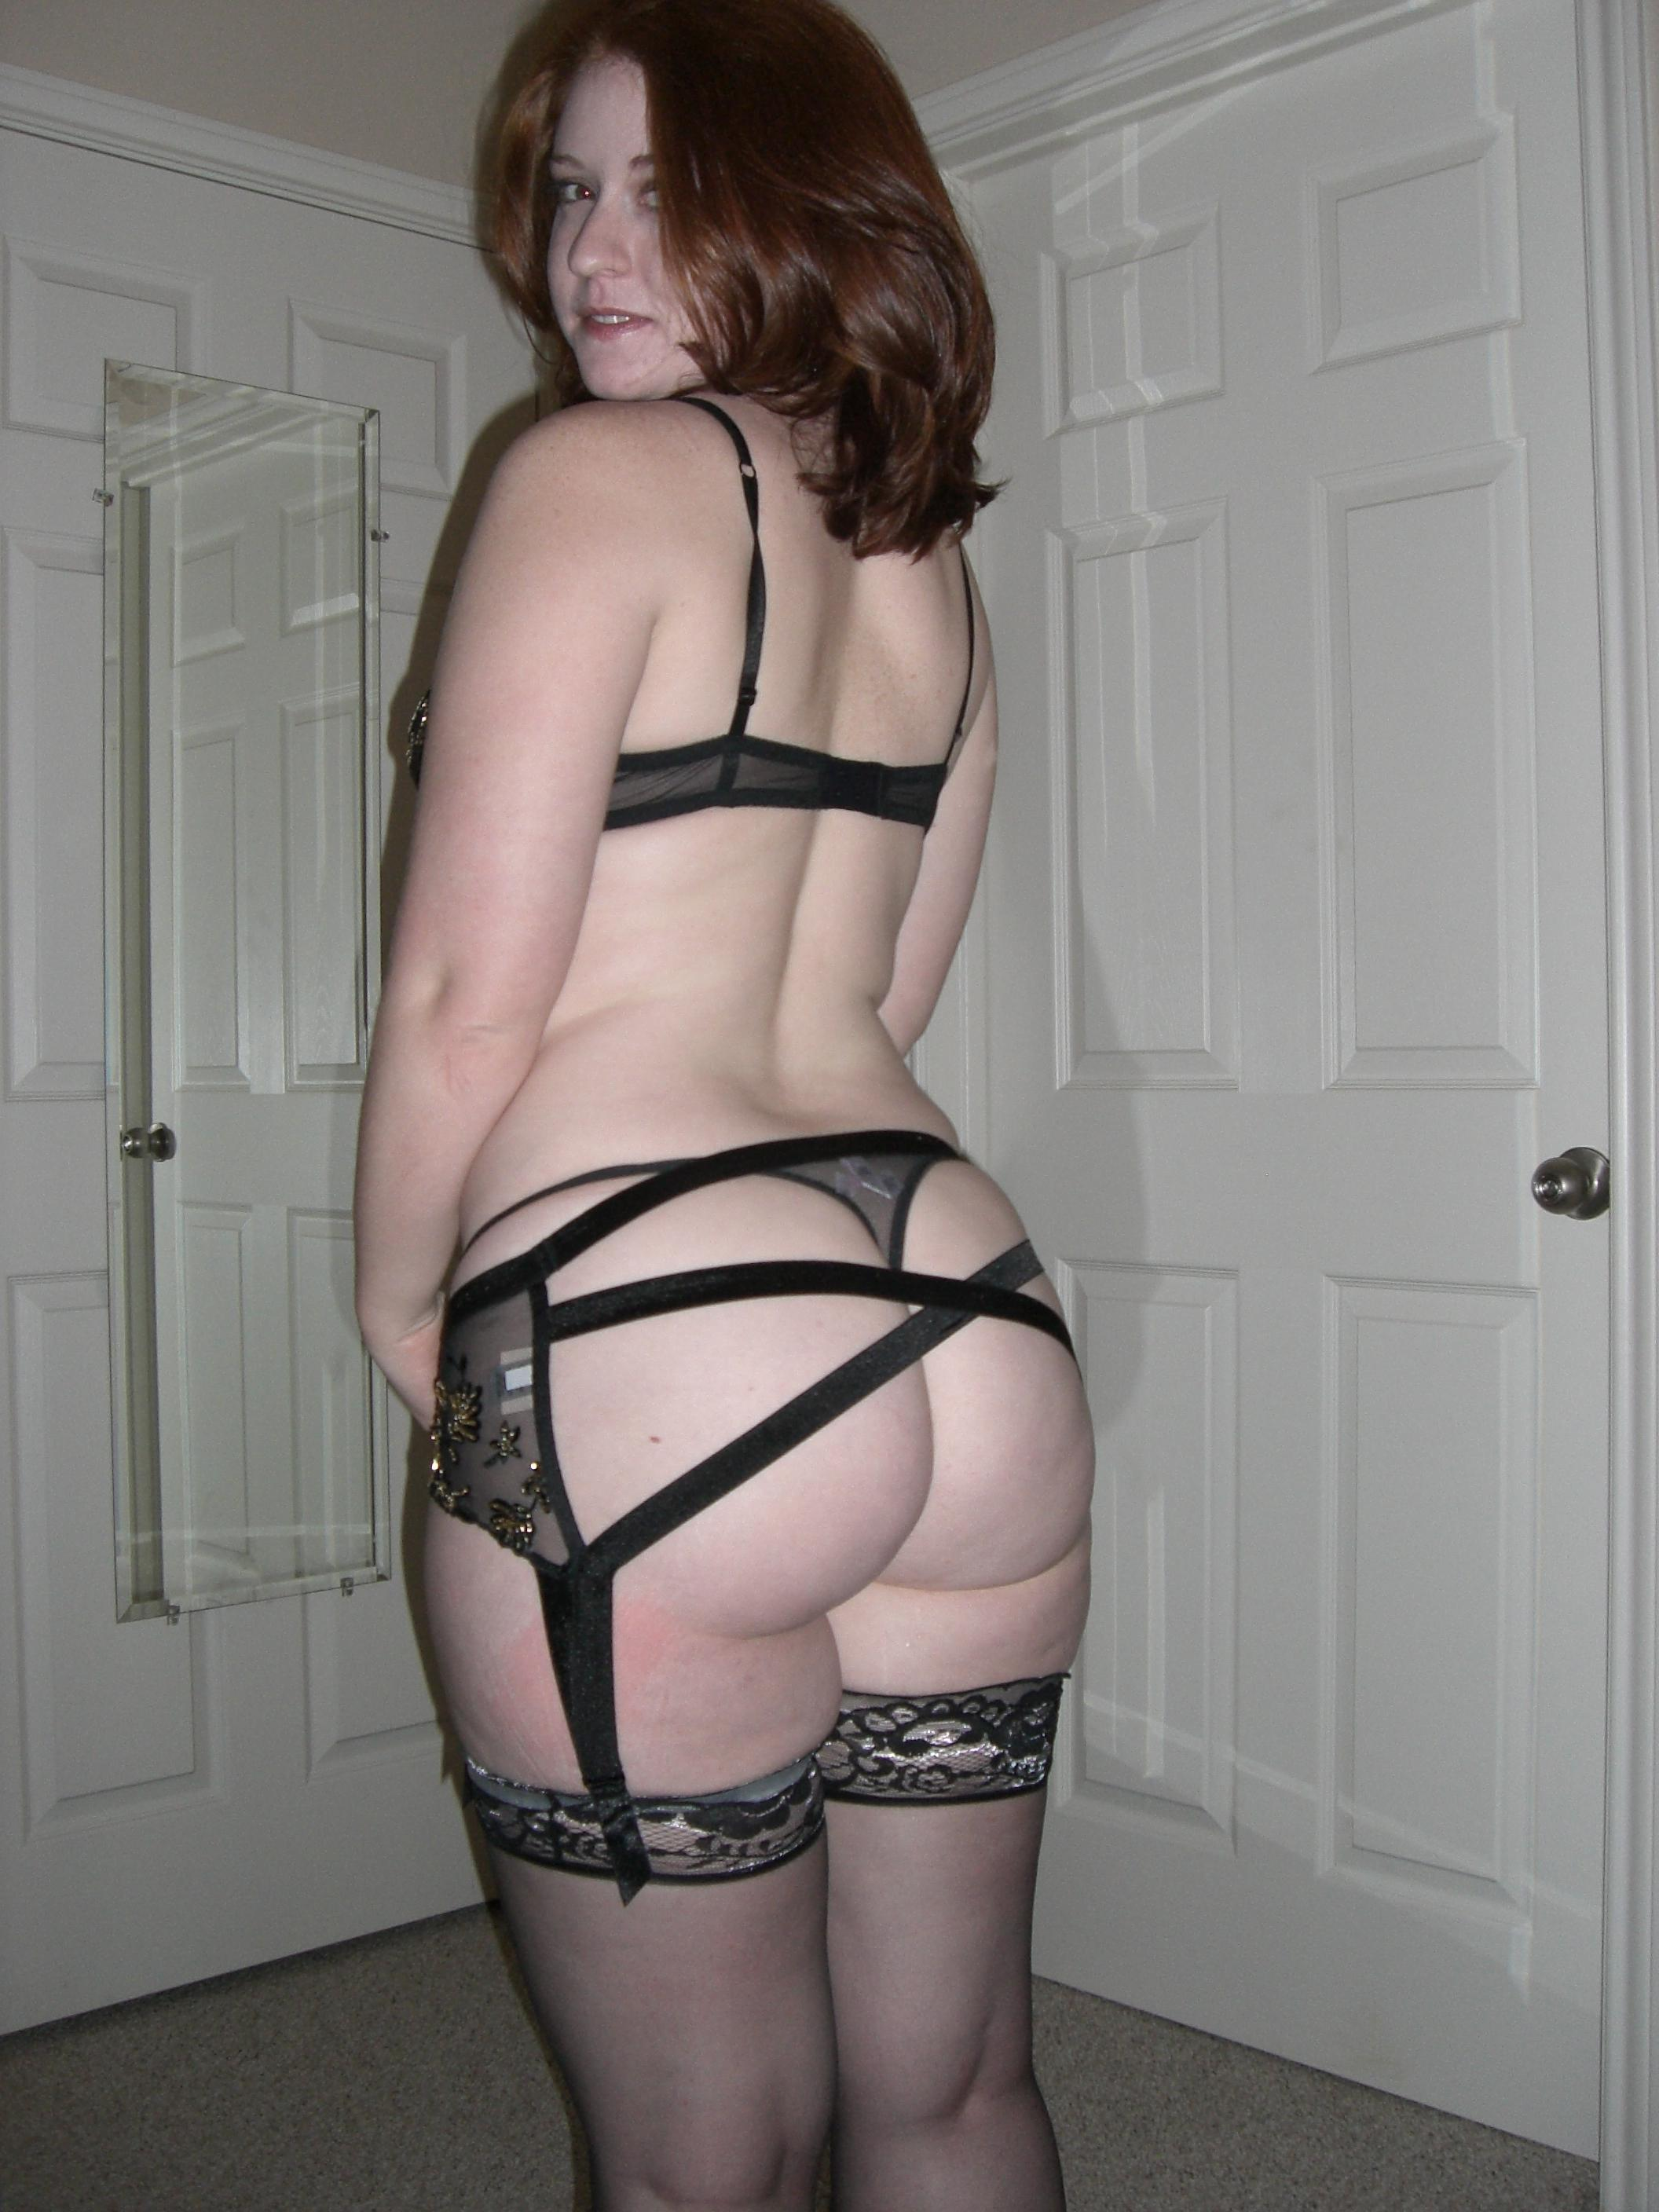 Wife Lingerie Gallery